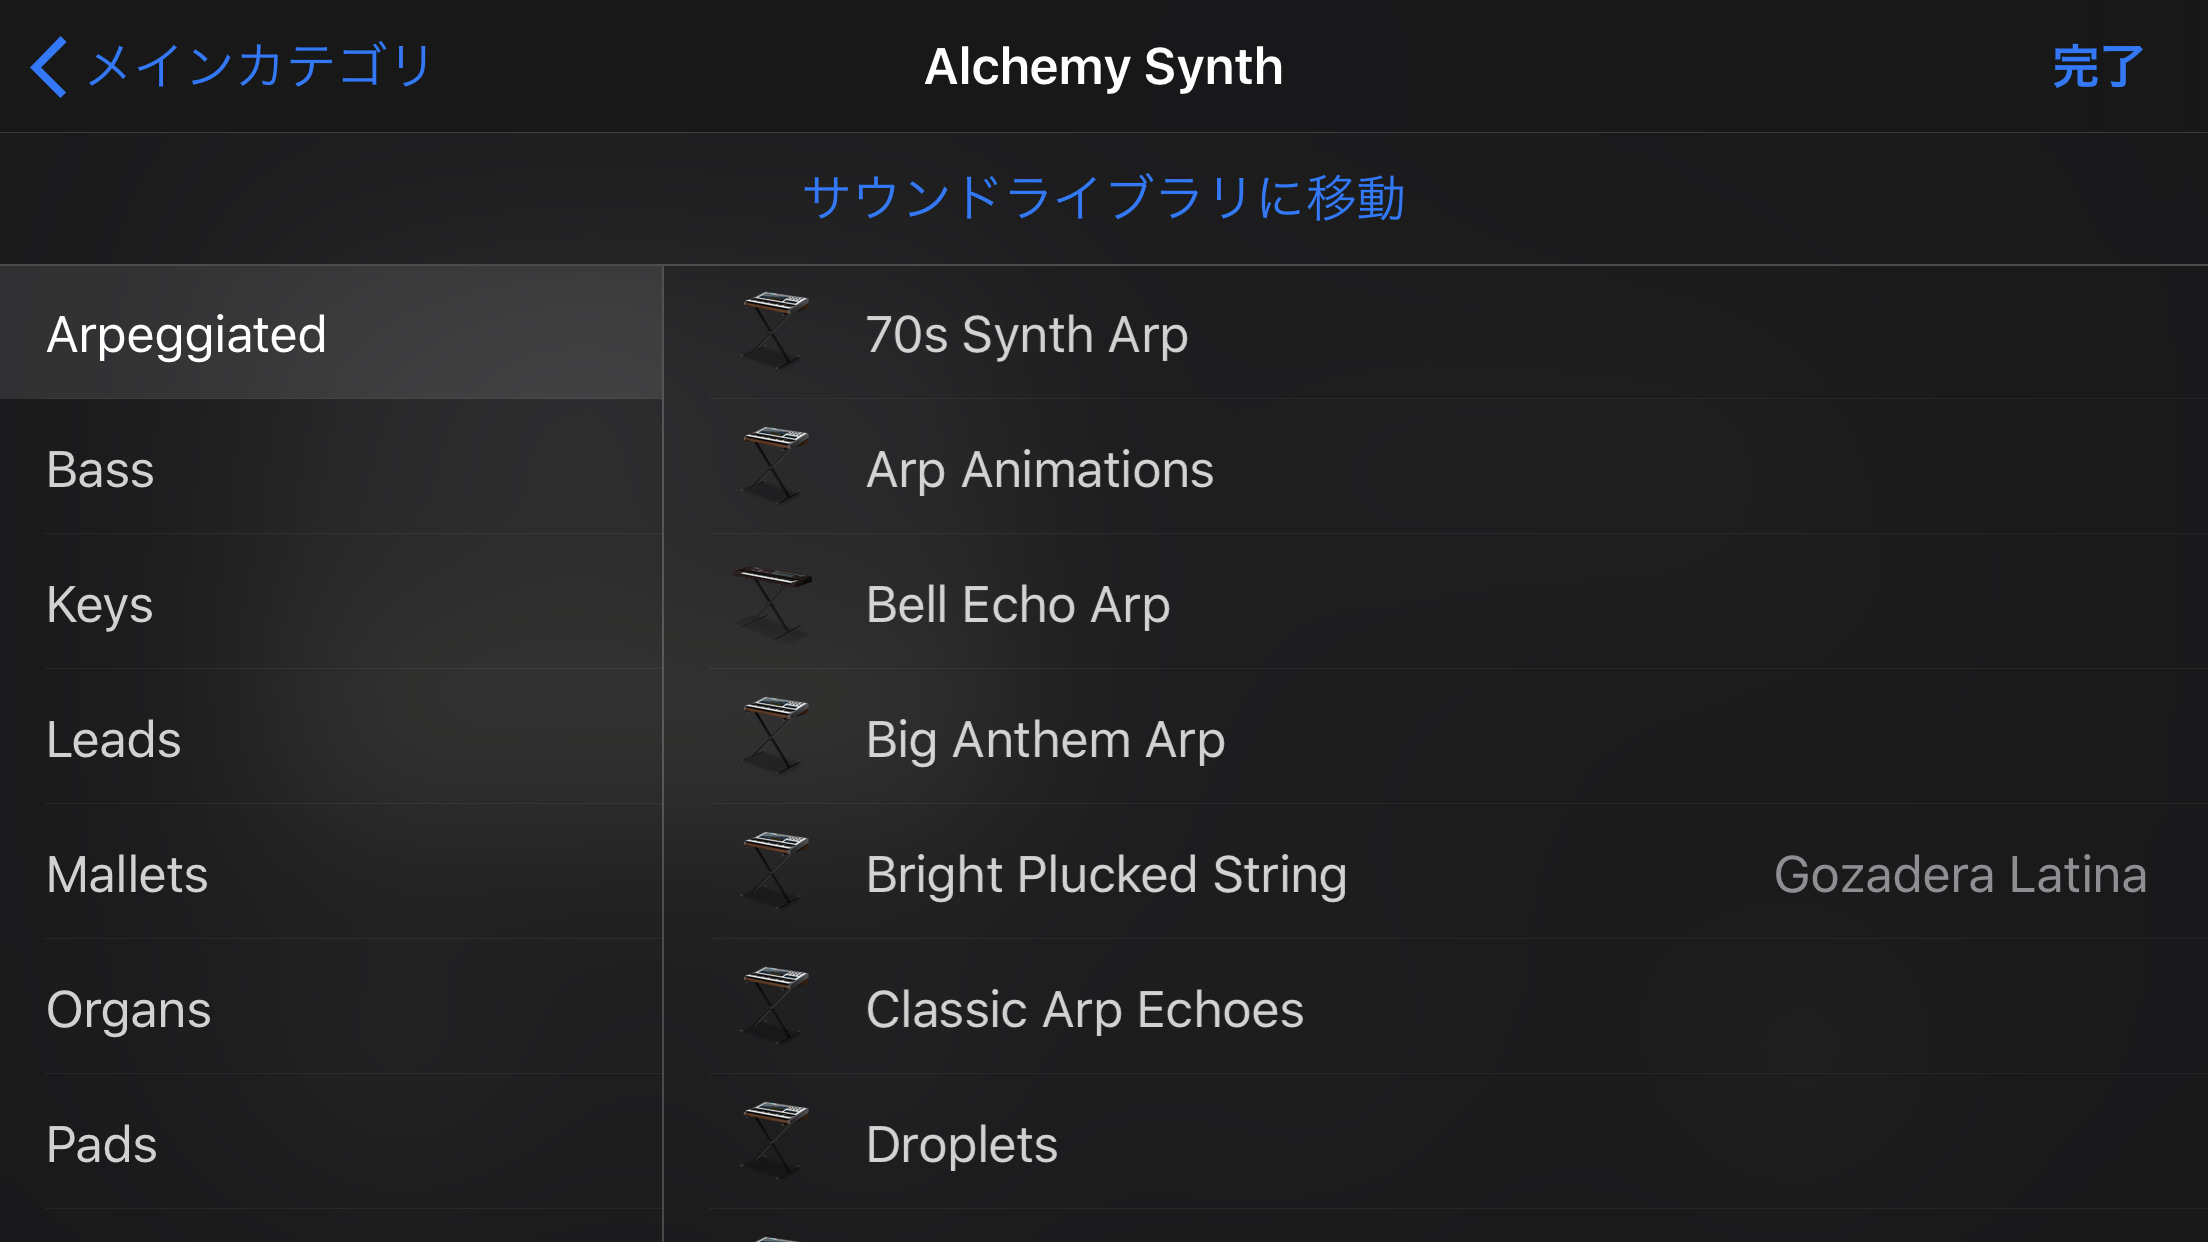 Alchemy-Synth